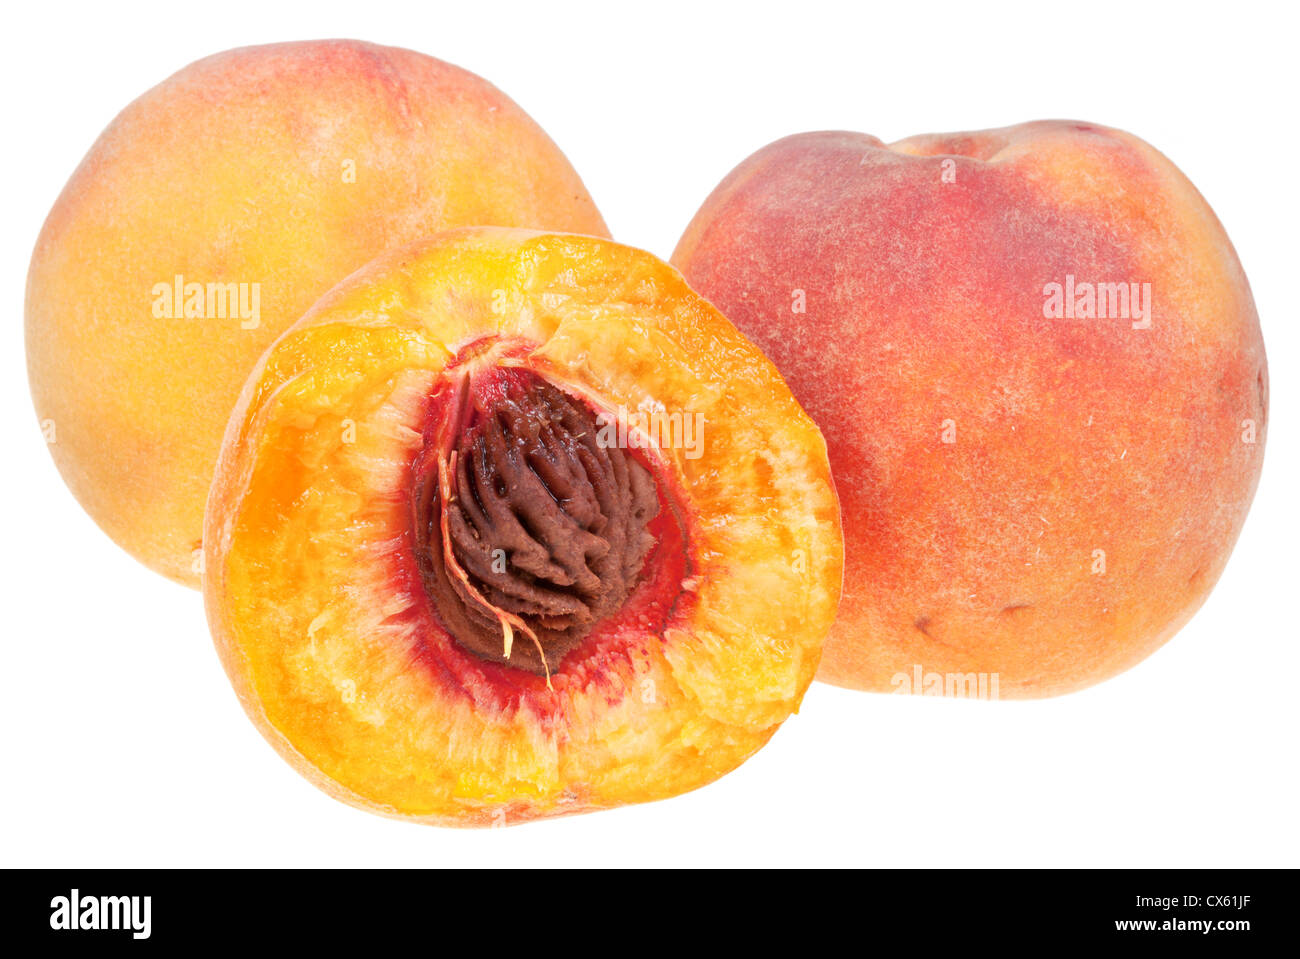 ripe juicy peaches isolated on white background - Stock Image